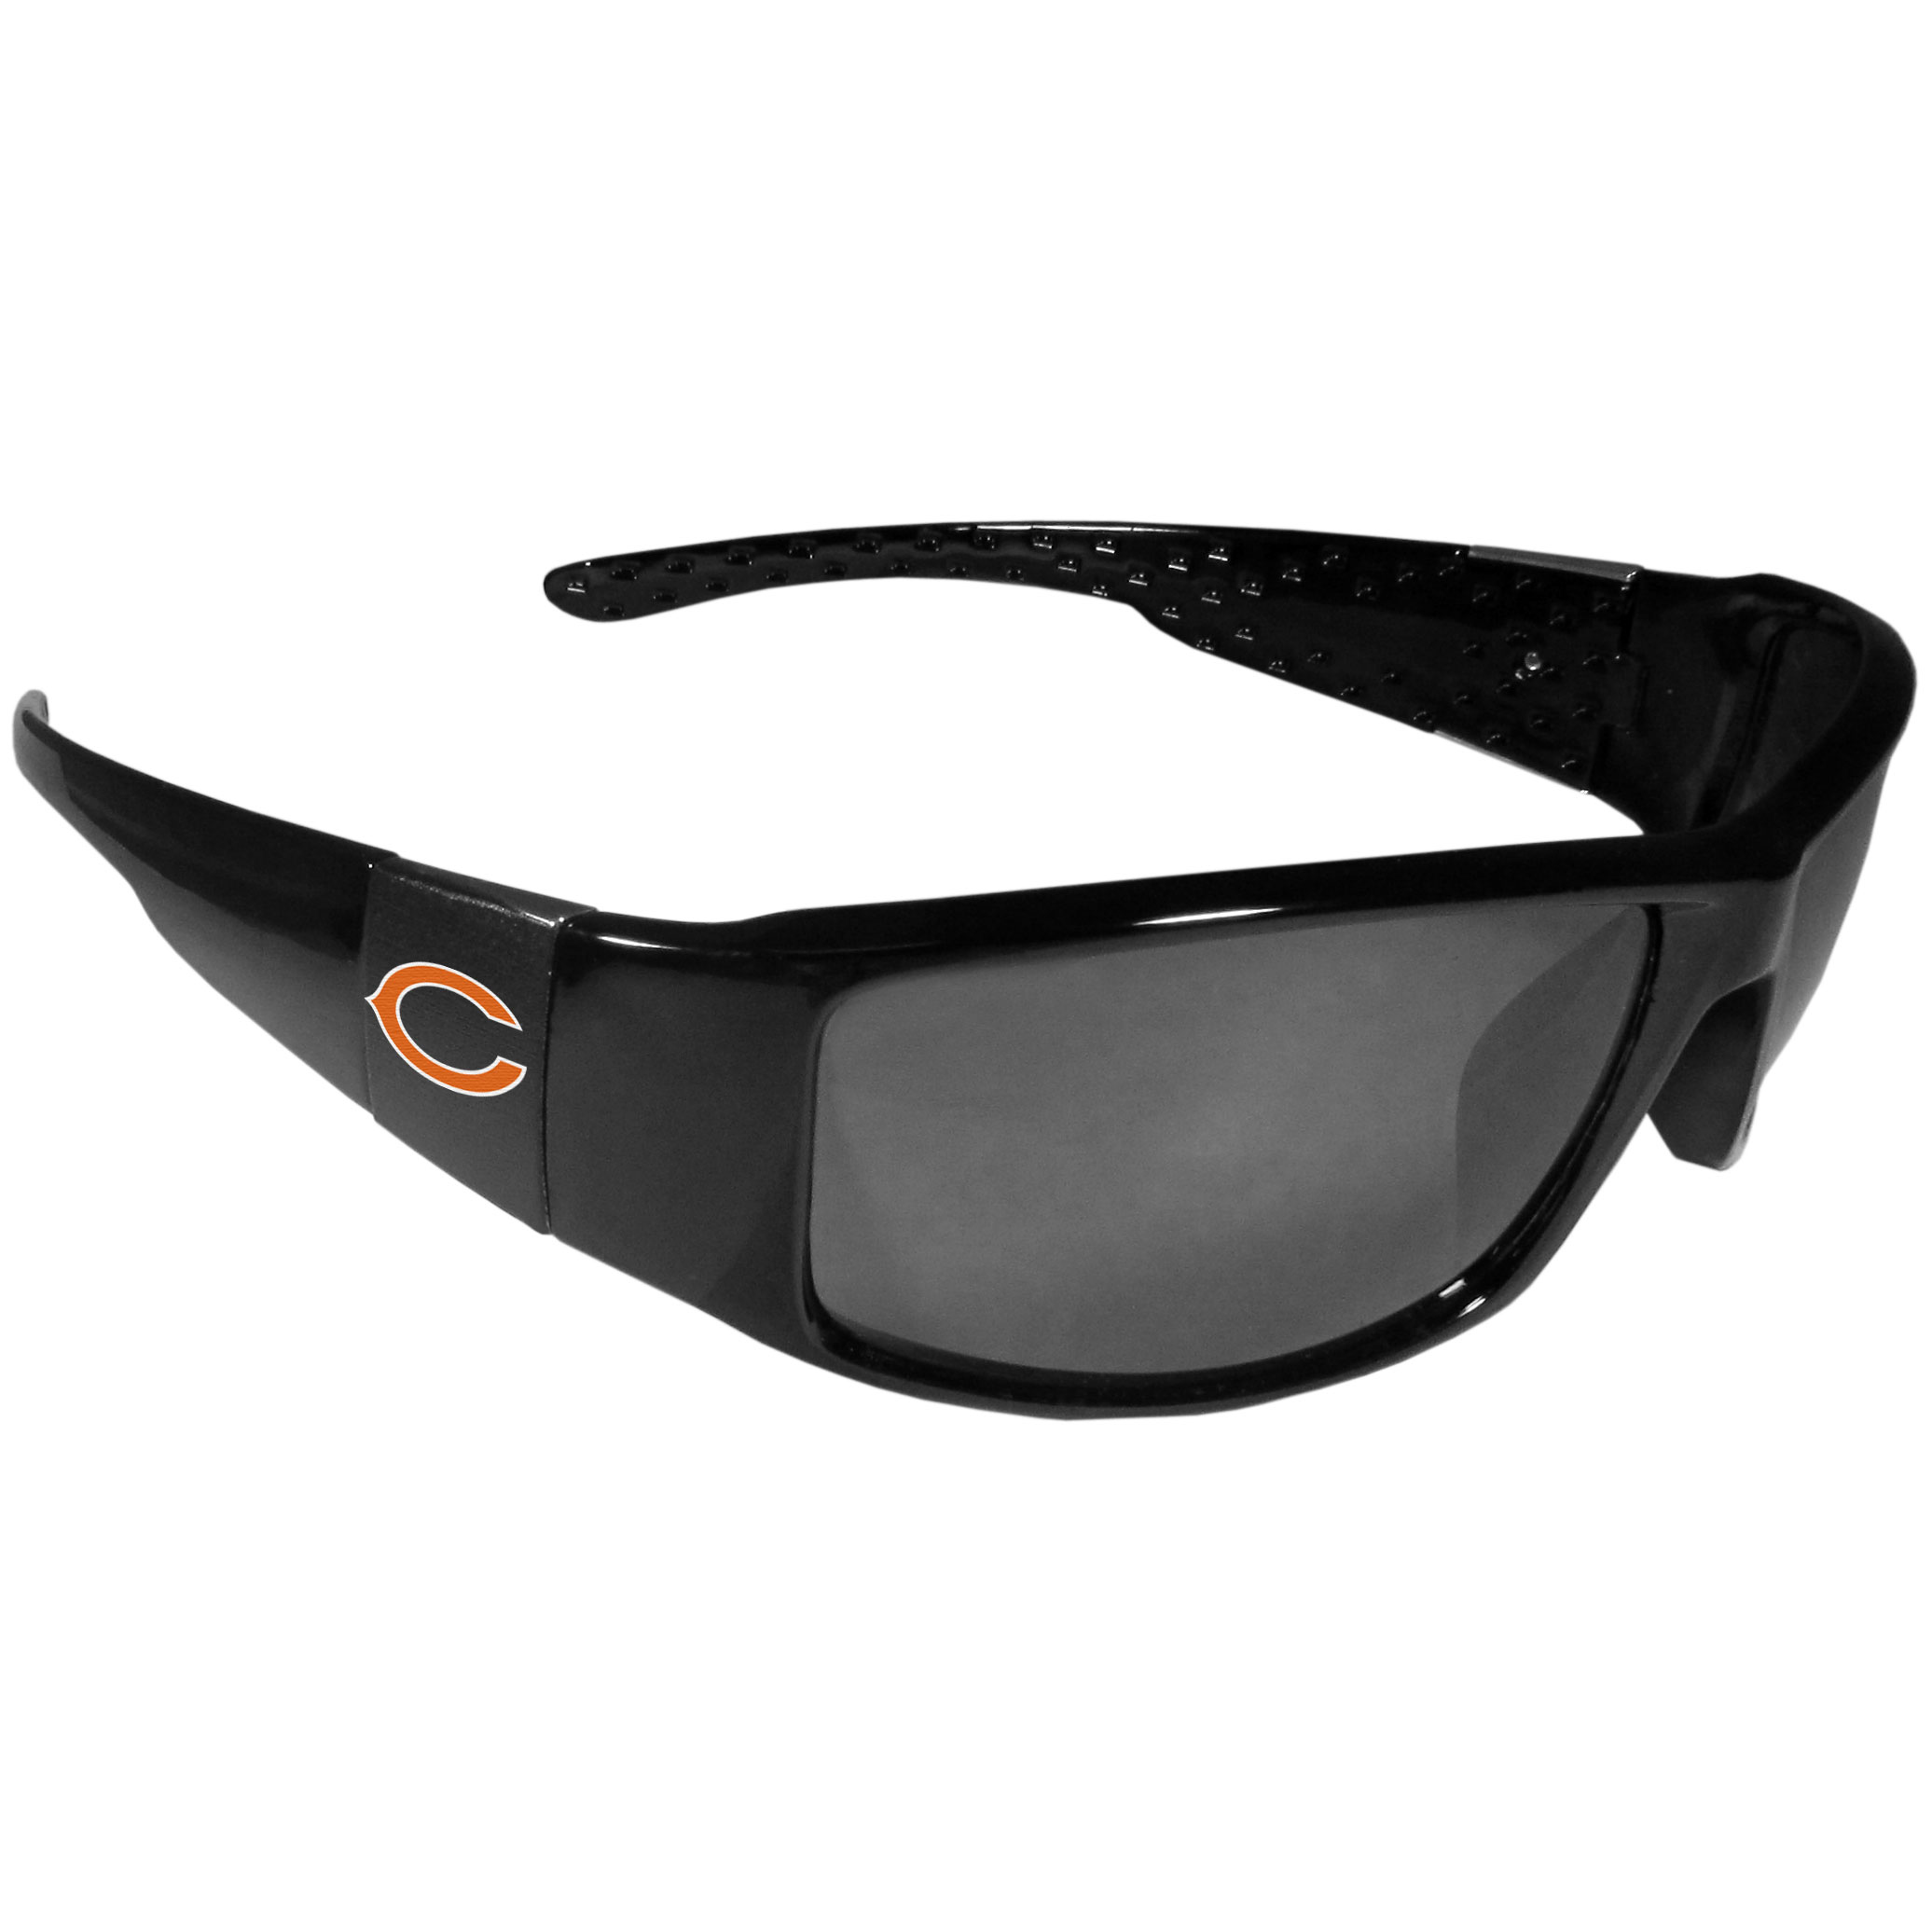 Chicago Bears Black Wrap Sunglasses - These designer inspired frames have a sleek look in all black with  Chicago Bears shields on each arm with a printed logo. The shades are perfect for any outdoor activity like; golfing, driving, hiking, fishing or cheering on the team at a tailgating event or at a home game day BBQ with a lens rating of 100% UVA/UVB for maximum UV protection. The high-quality frames are as durable as they are fashionable and with their classic look they are the perfect fan accessory that can be worn everyday for every occasion.